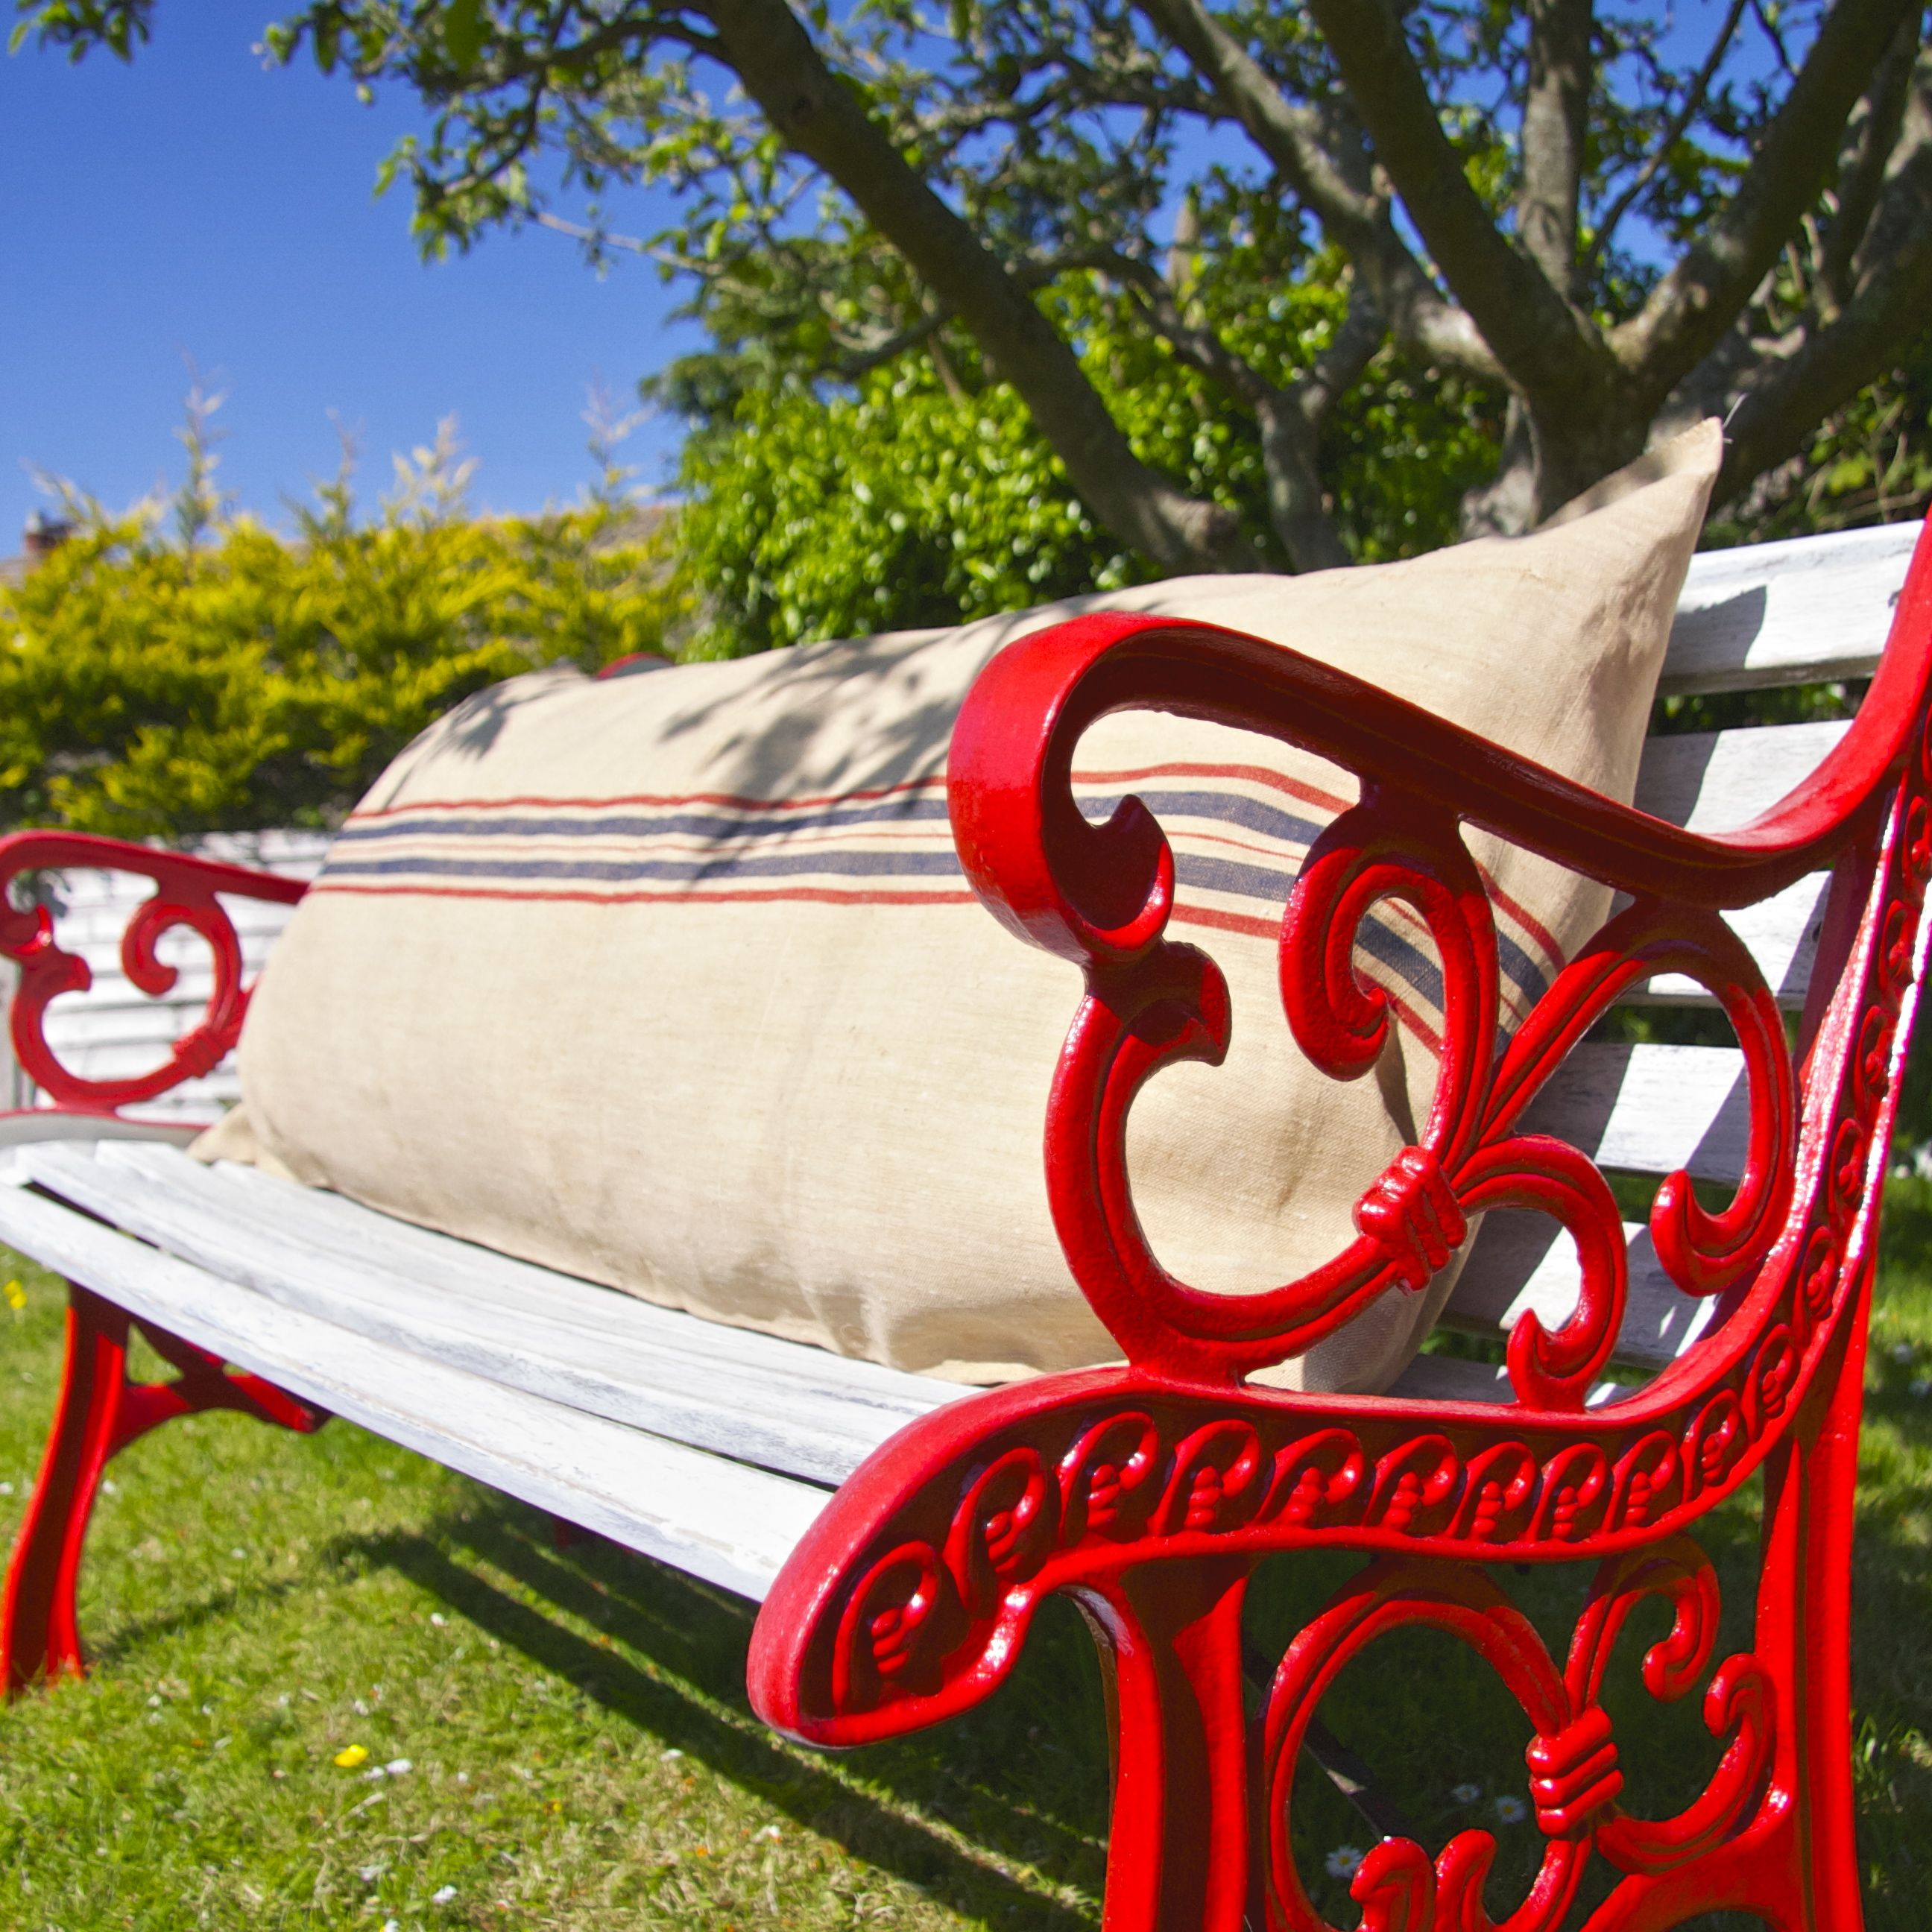 Upcycled Garden Bench Painted Red White With Authentic French Grain Sack Bolster Cushion Www Thelambshed Garden Bench Diy Garden Bench Seating Garden Bench